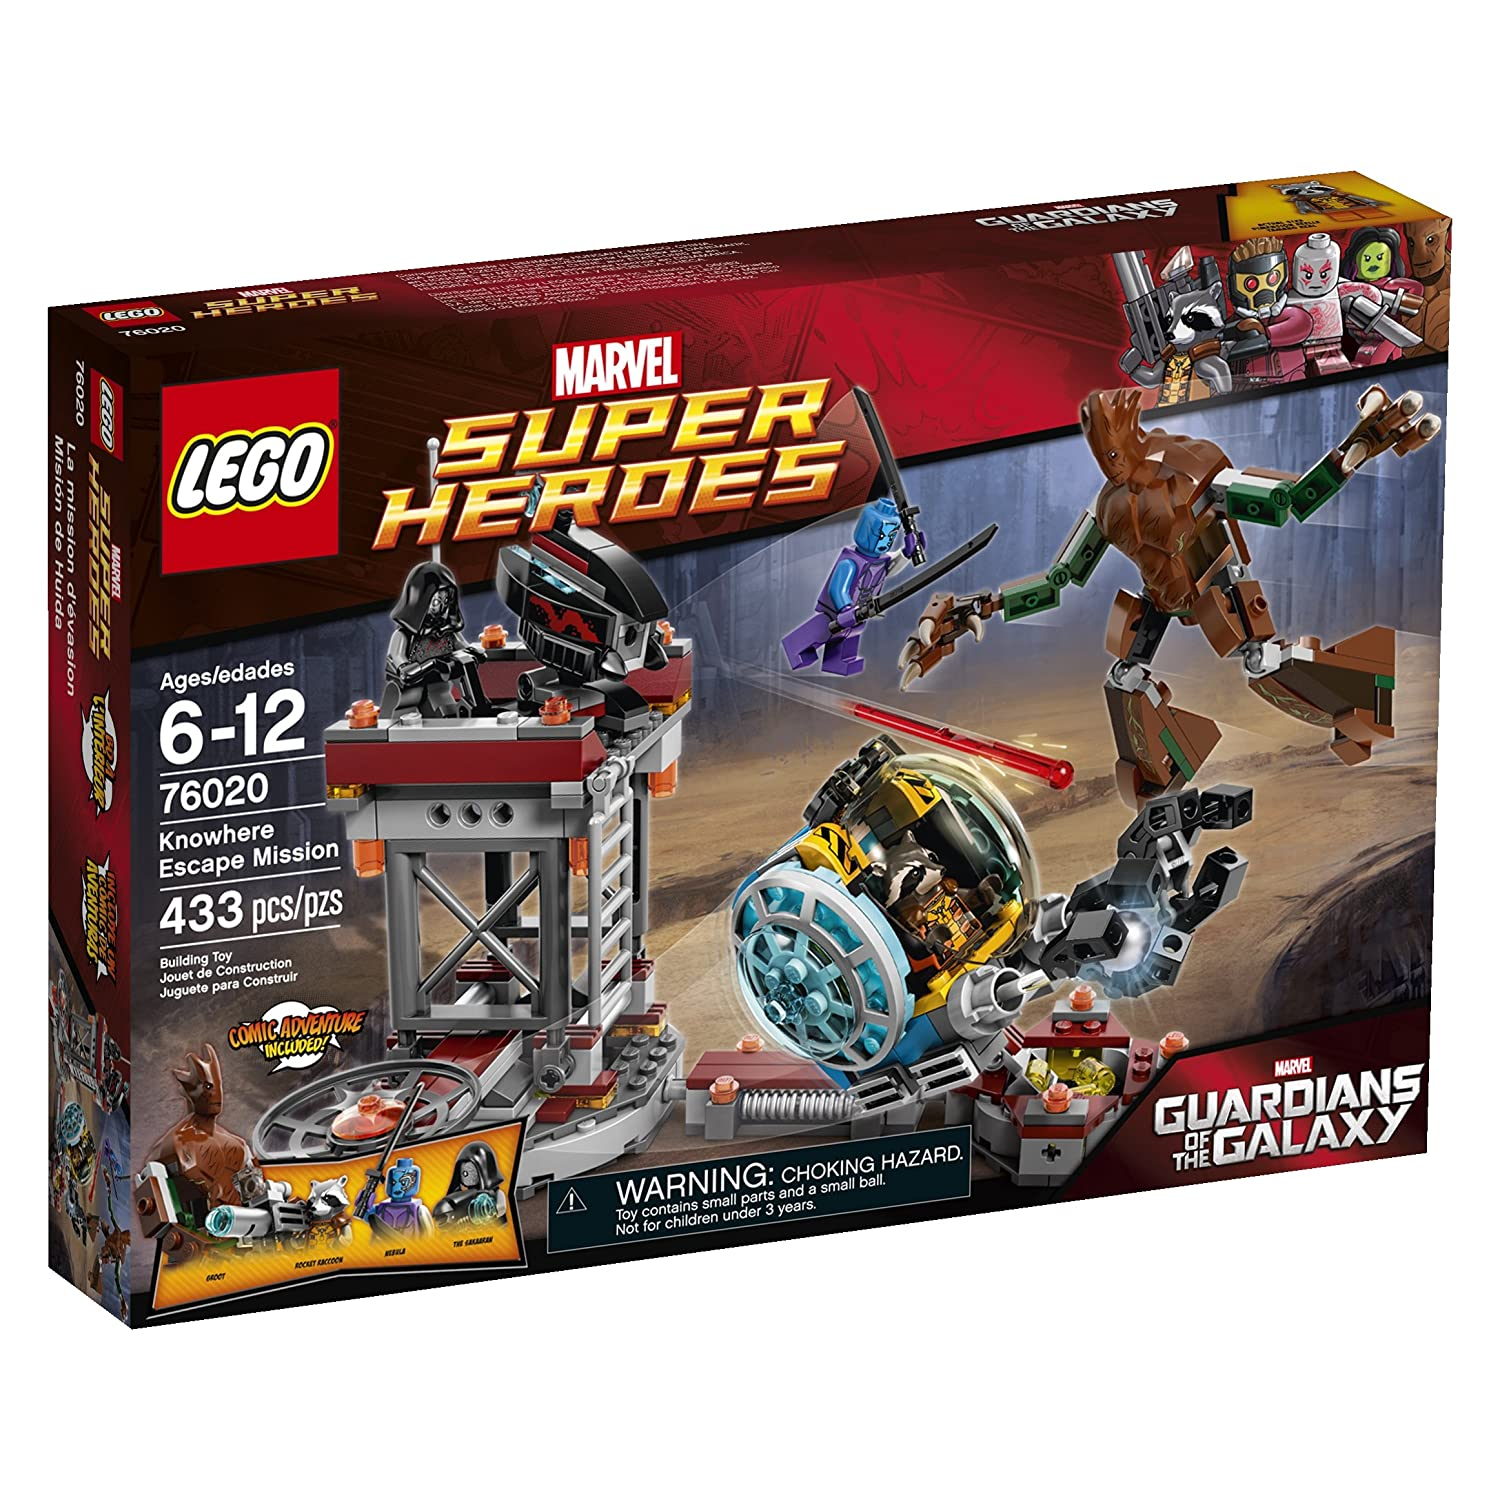 Top 7 Best LEGO Guardians of the Galaxy Sets Reviews in 2020 4